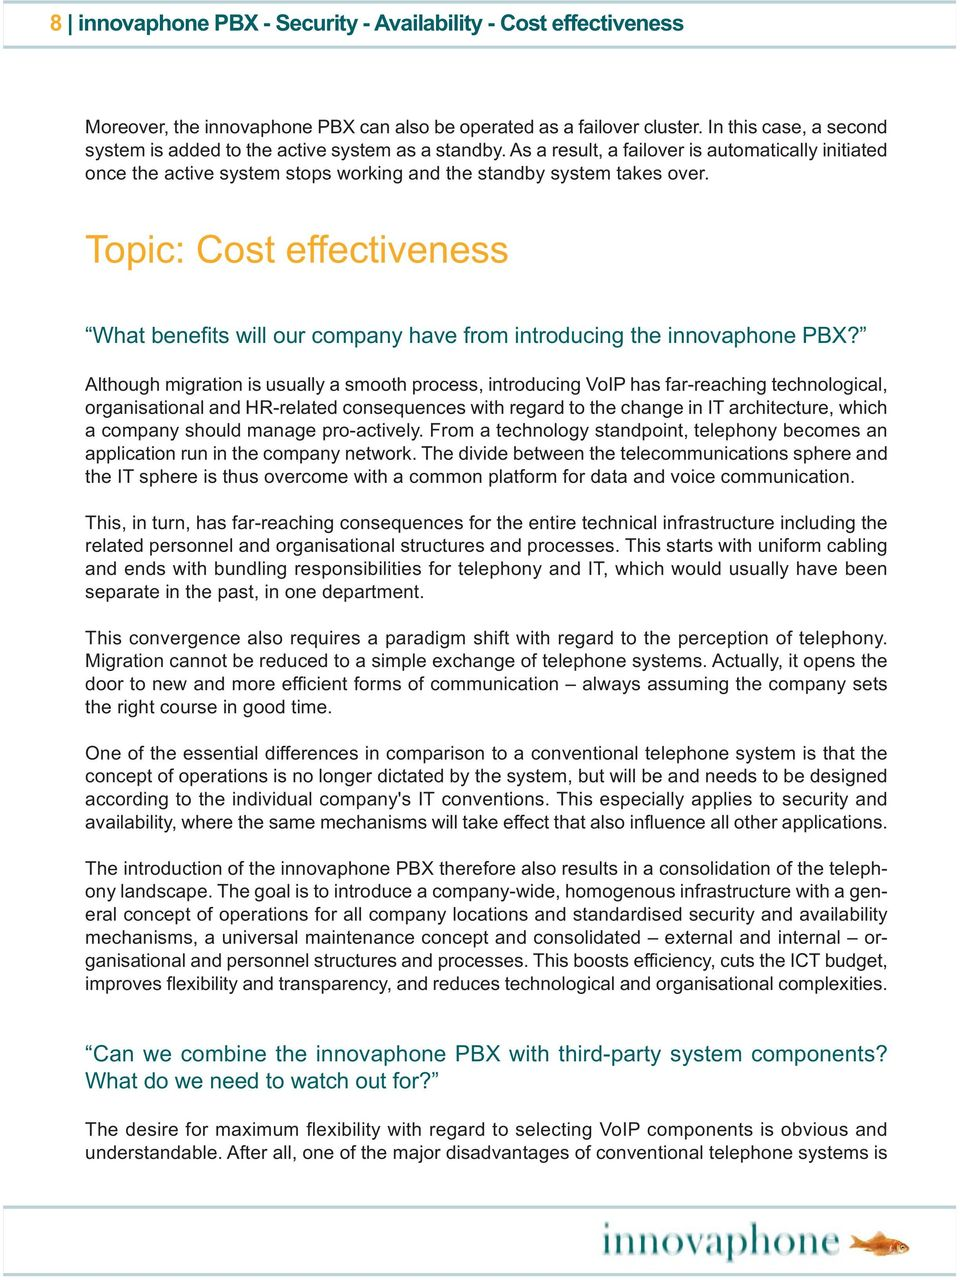 Topic: Cost effectiveness What benefits will our company have from introducing the innovaphone PBX?